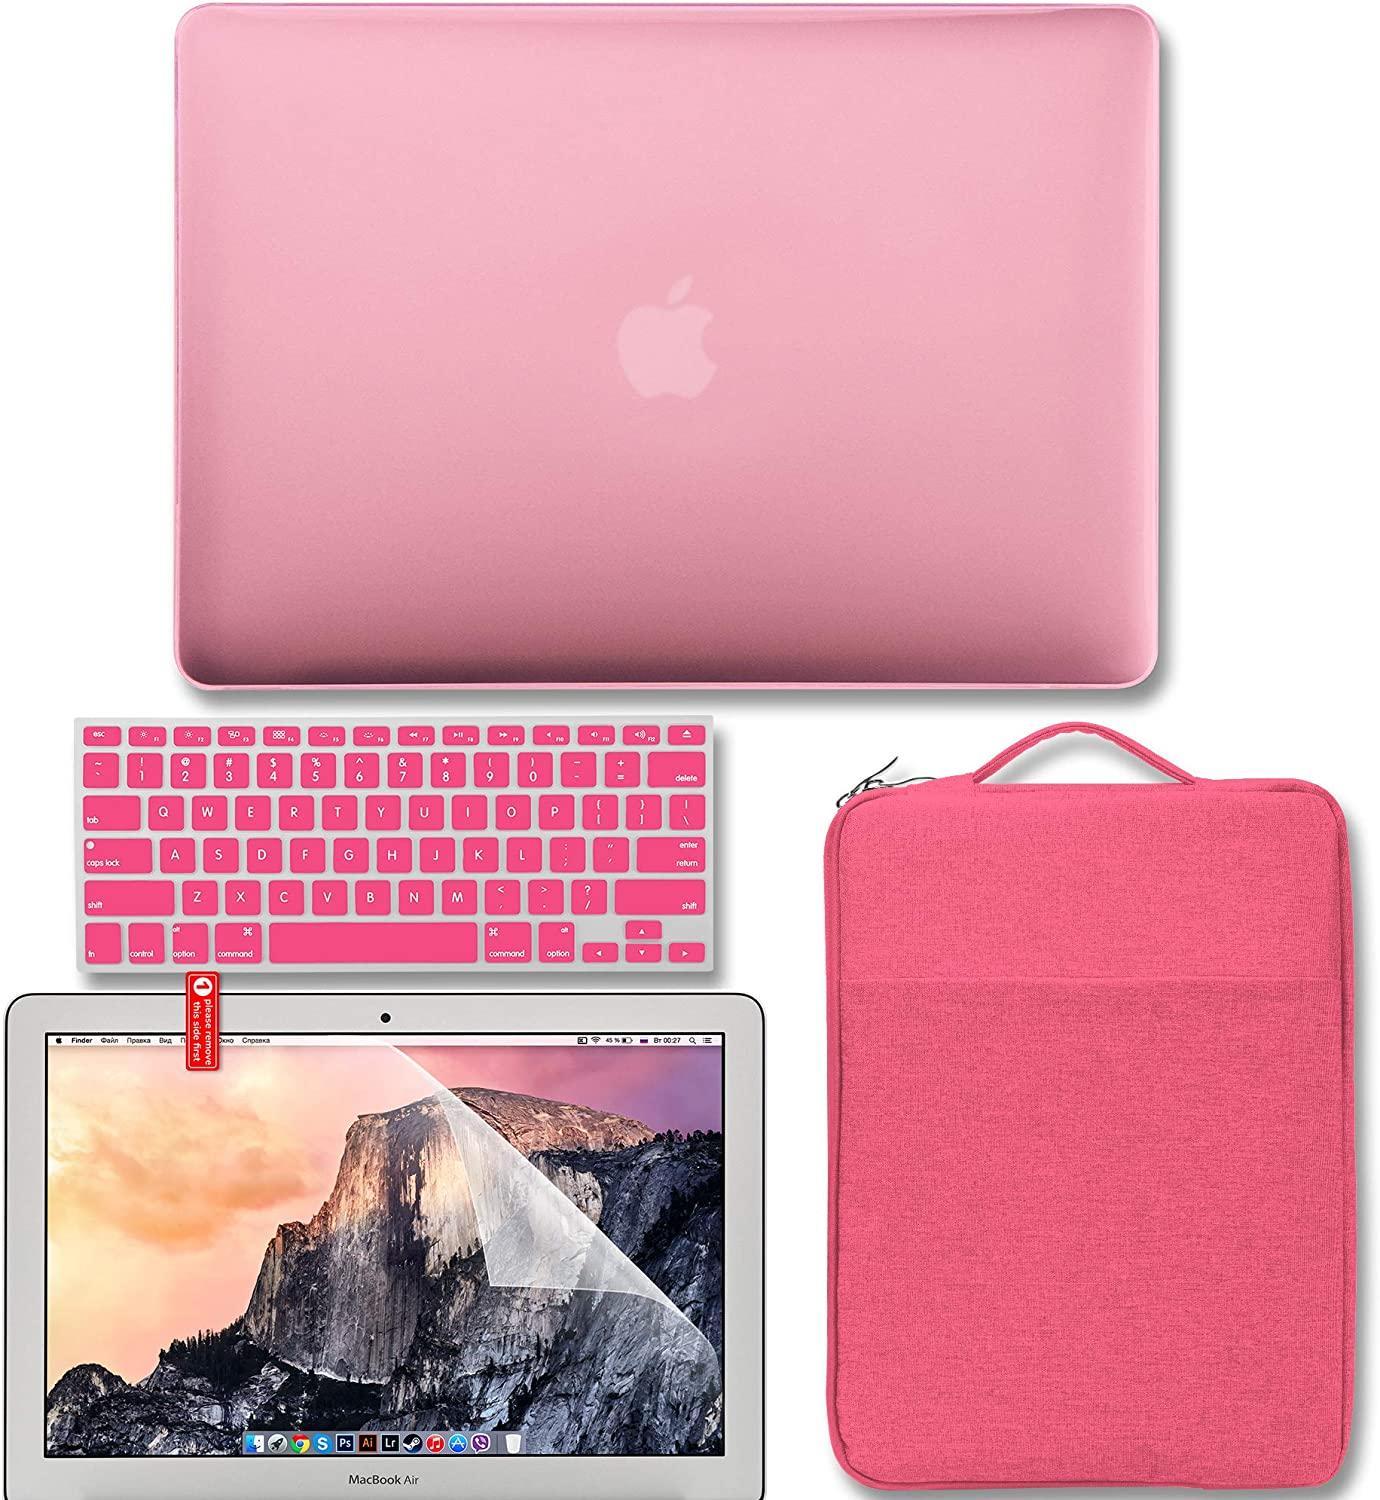 GMYLE MacBook Air 13 Inch Case A1466 A1369 2010-2017 4 in 1 Bundle, Hard Plastic Shell Cover, Carrying Sleeve Bag, Screen Protector and Keyboard Cover Compatible with Old MacBook Air 13 inch, Pink